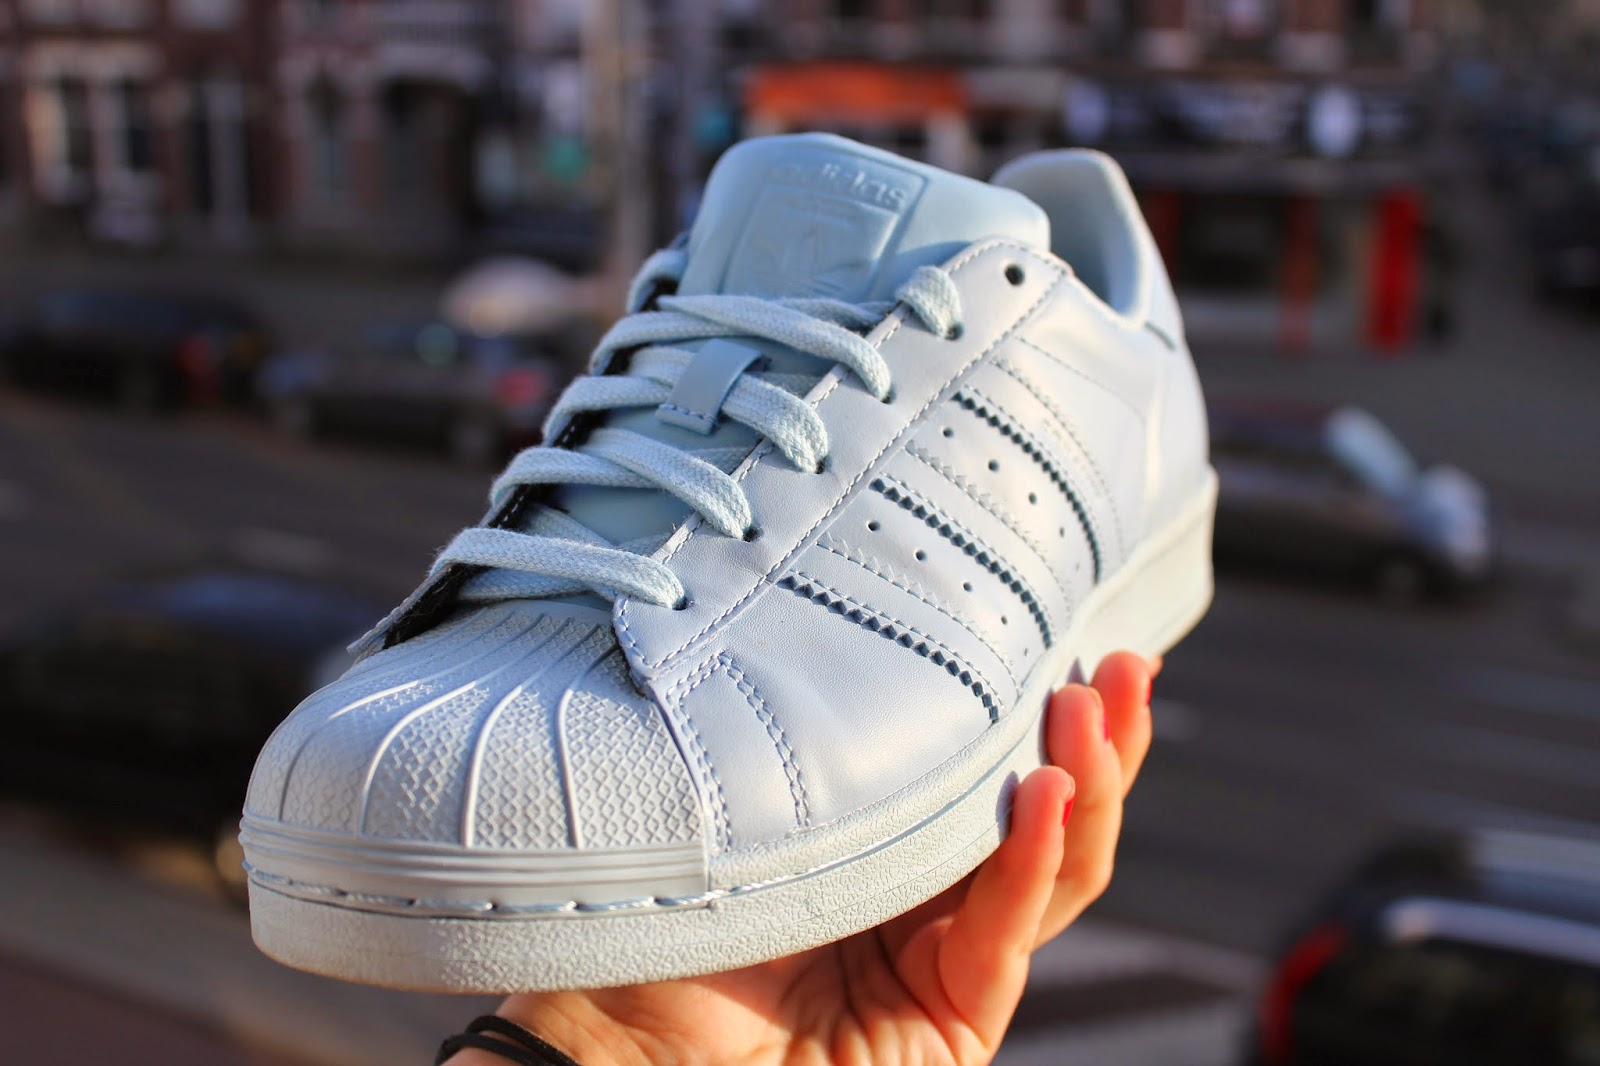 d67ff98b707 Arifashionthread - Luxembourg Fashion and Lifestyle Blog: Adidas ...